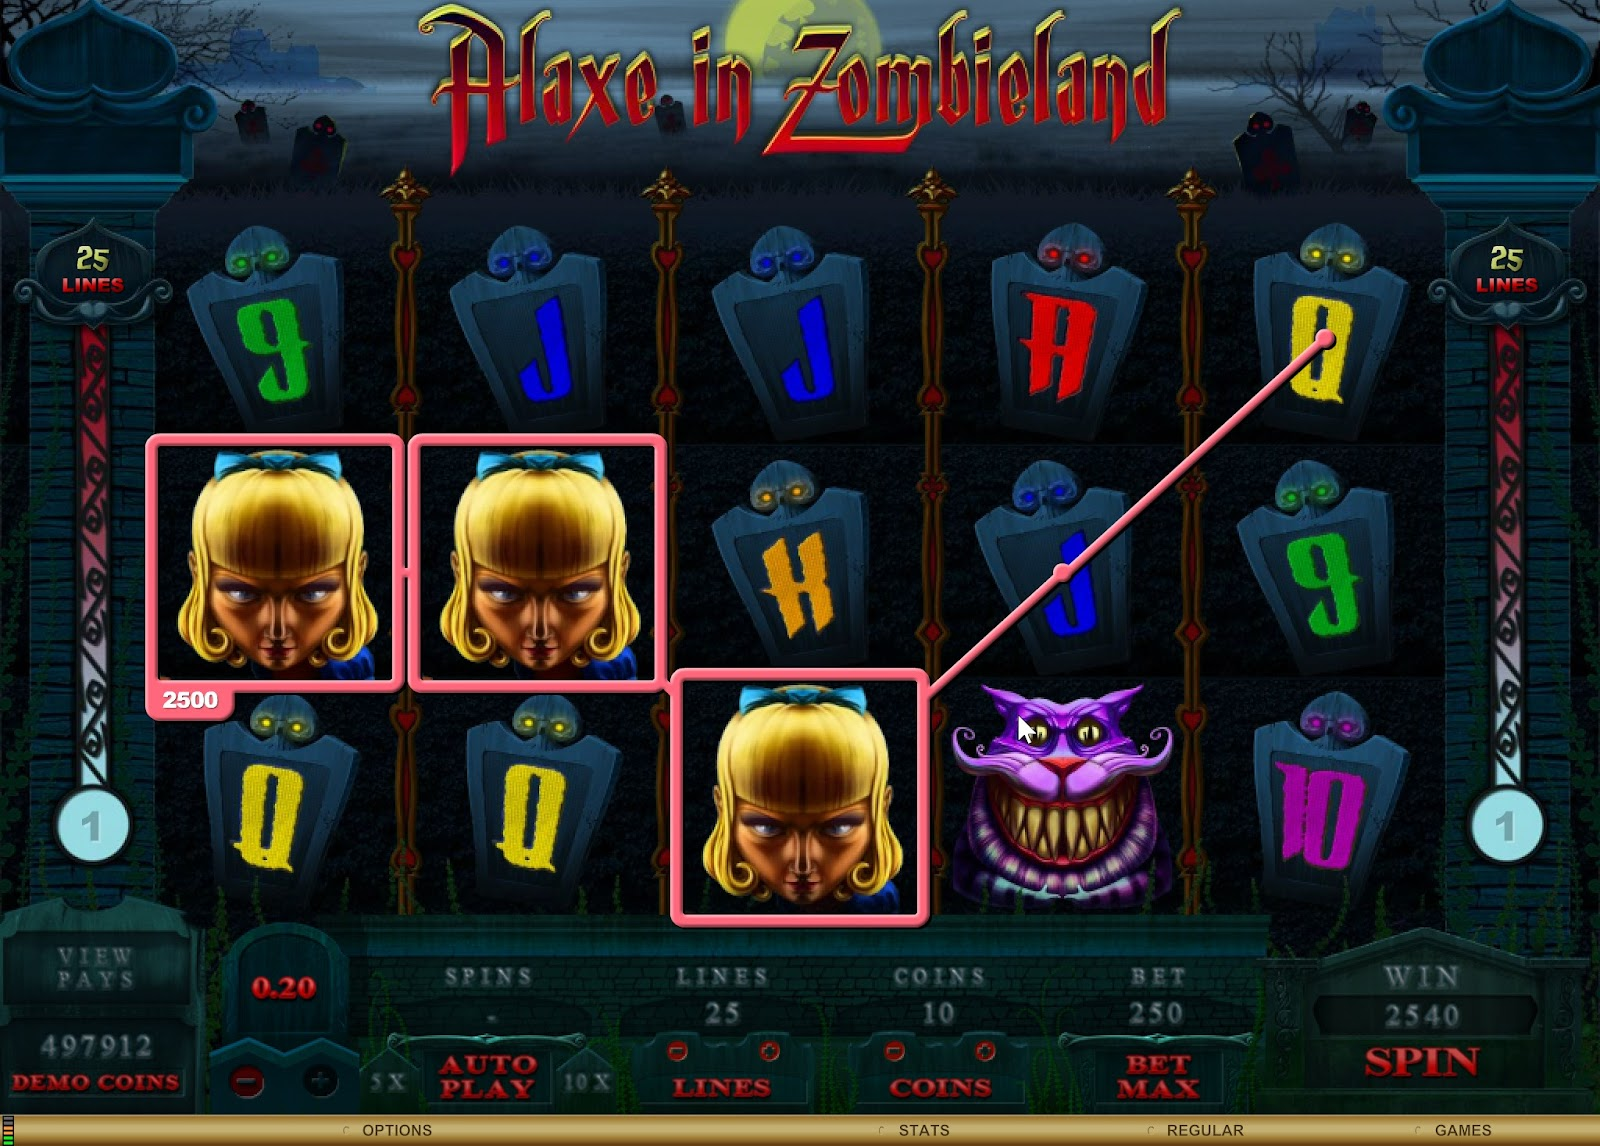 Alaxe in Zombieland Slots Game Review - GAMINGSAFE